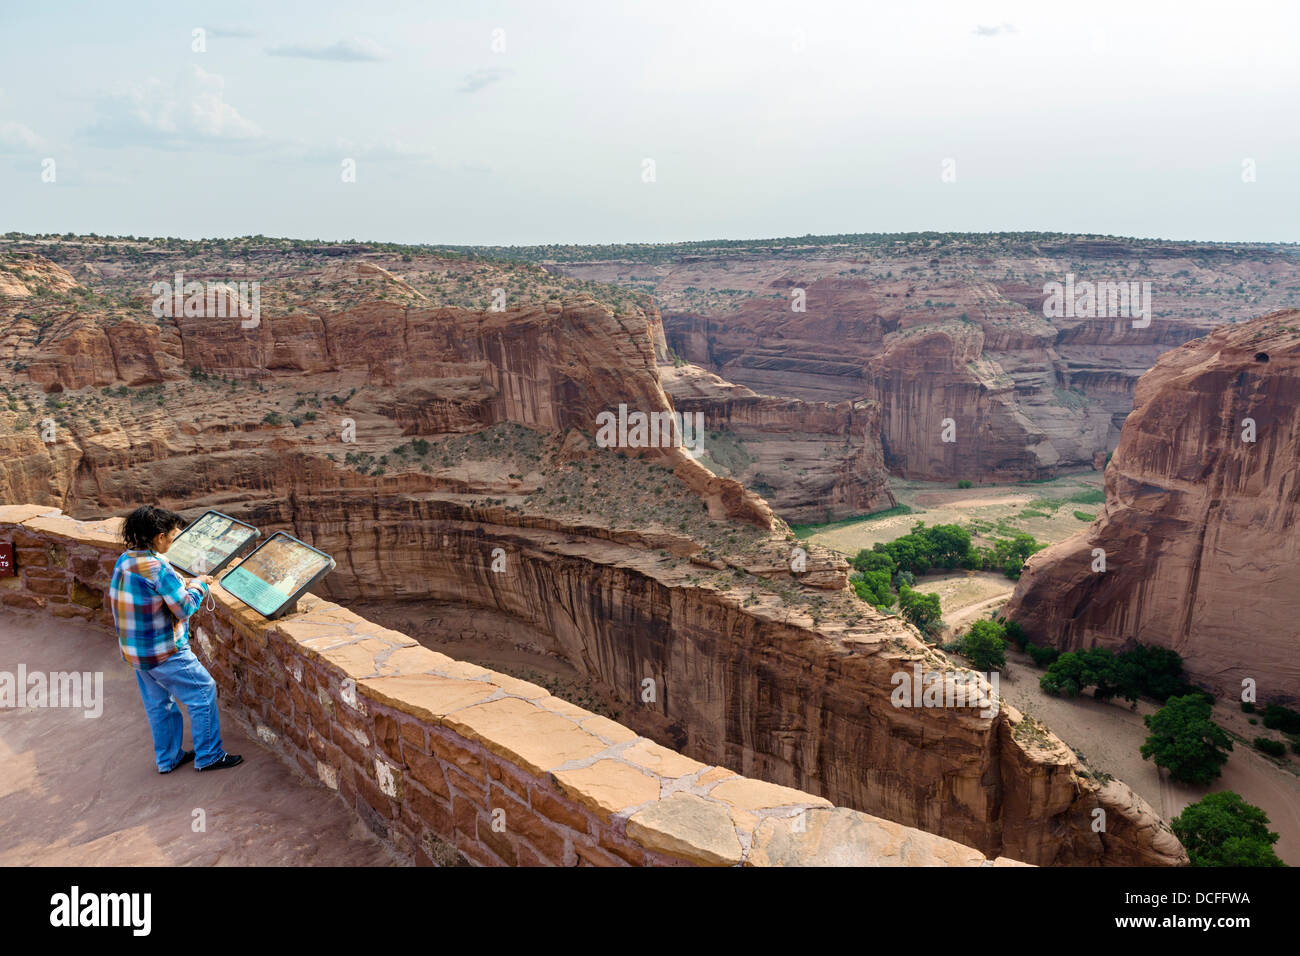 The Antelope House overlook on the North Rim at Canyon de Chelly National Monument, Chinle, Arizona, USA - Stock Image